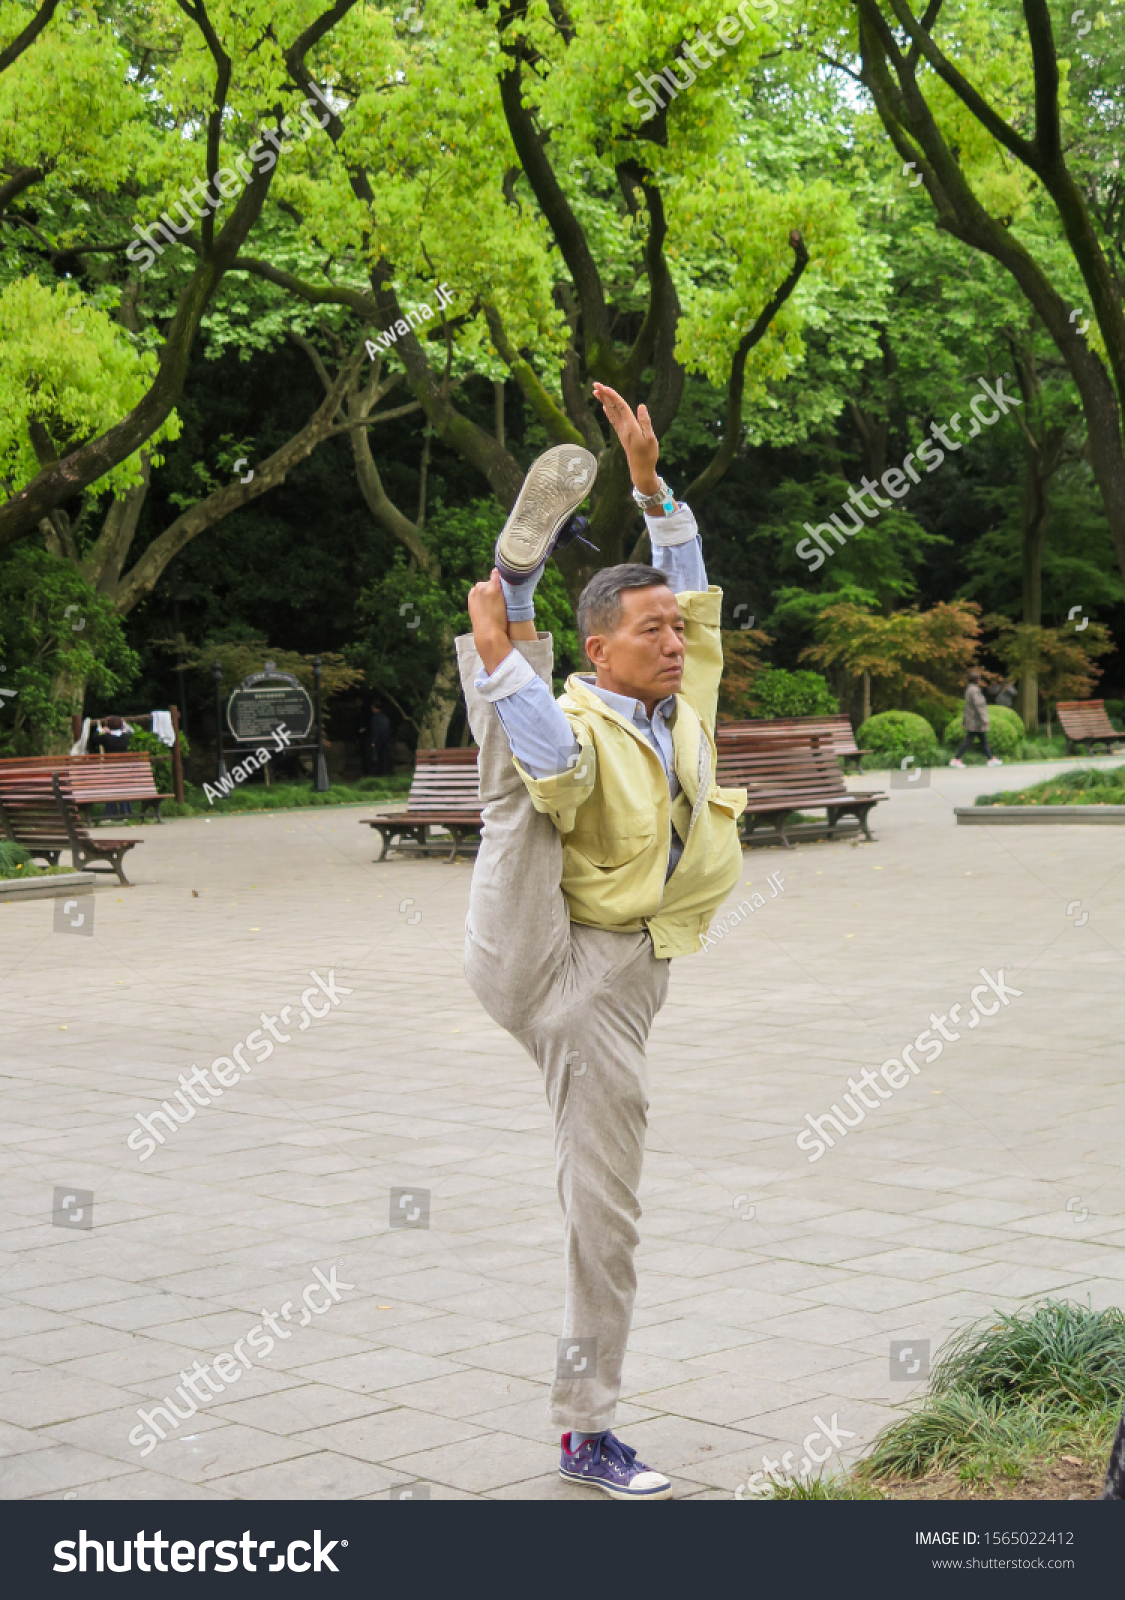 Shanghai, China - April 2017: Chinese man practicing stretching in a park